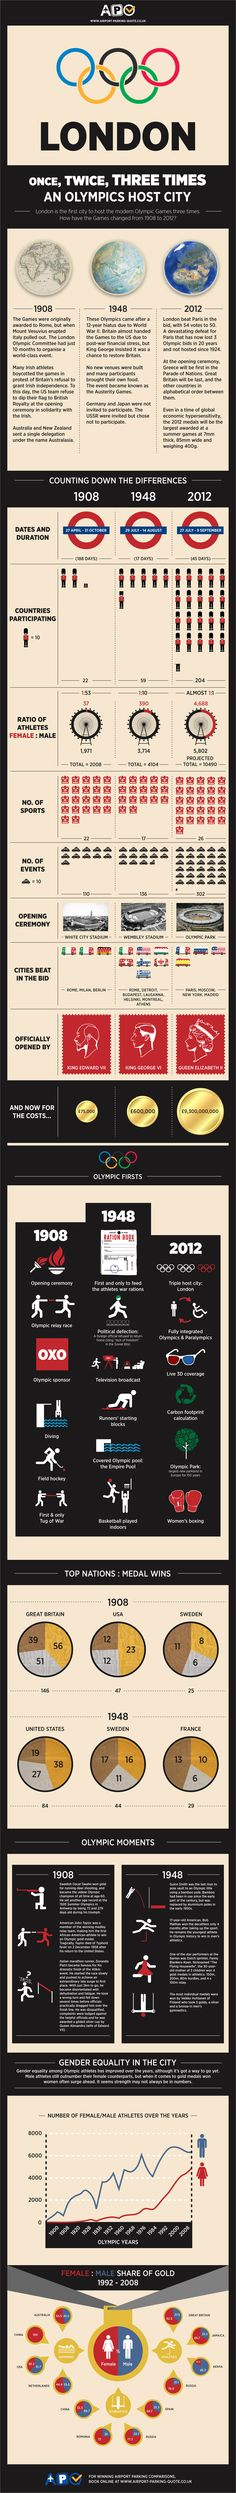 Celebrate the 2012 London Olympic Games with These 14 Infographics